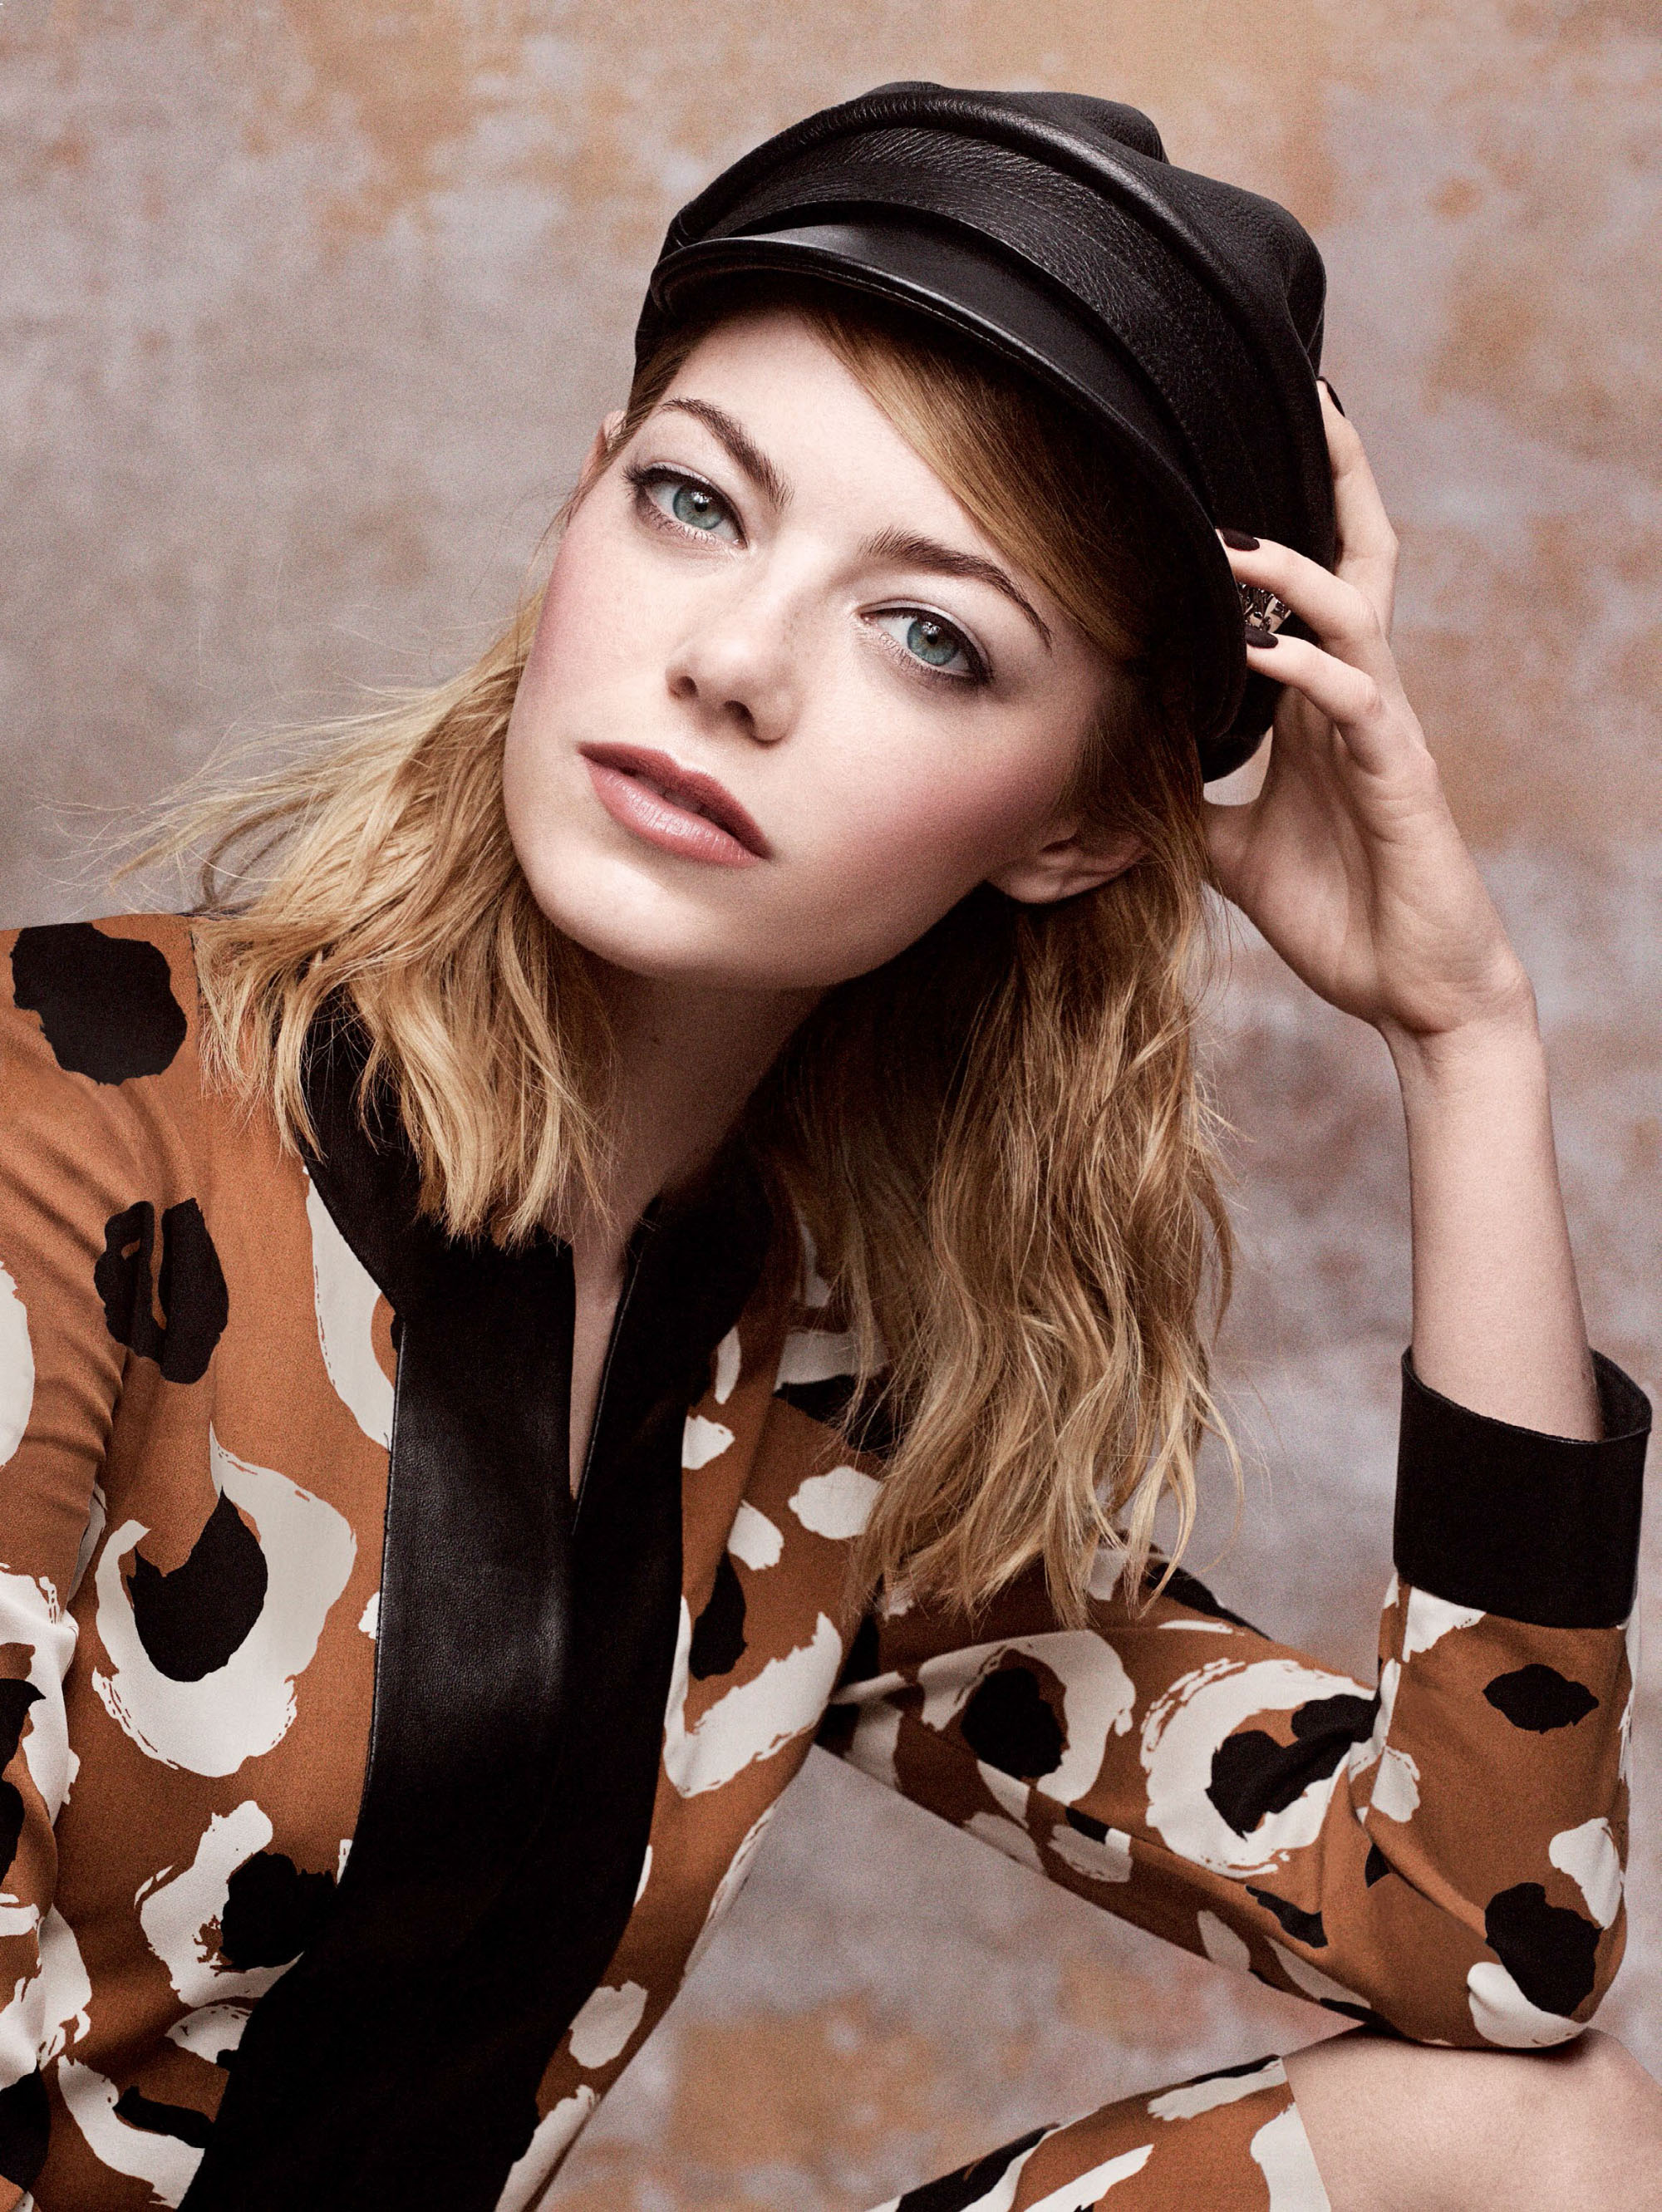 emma-stone-by-craig-mcdean-for-vogue-us-may-2014-1